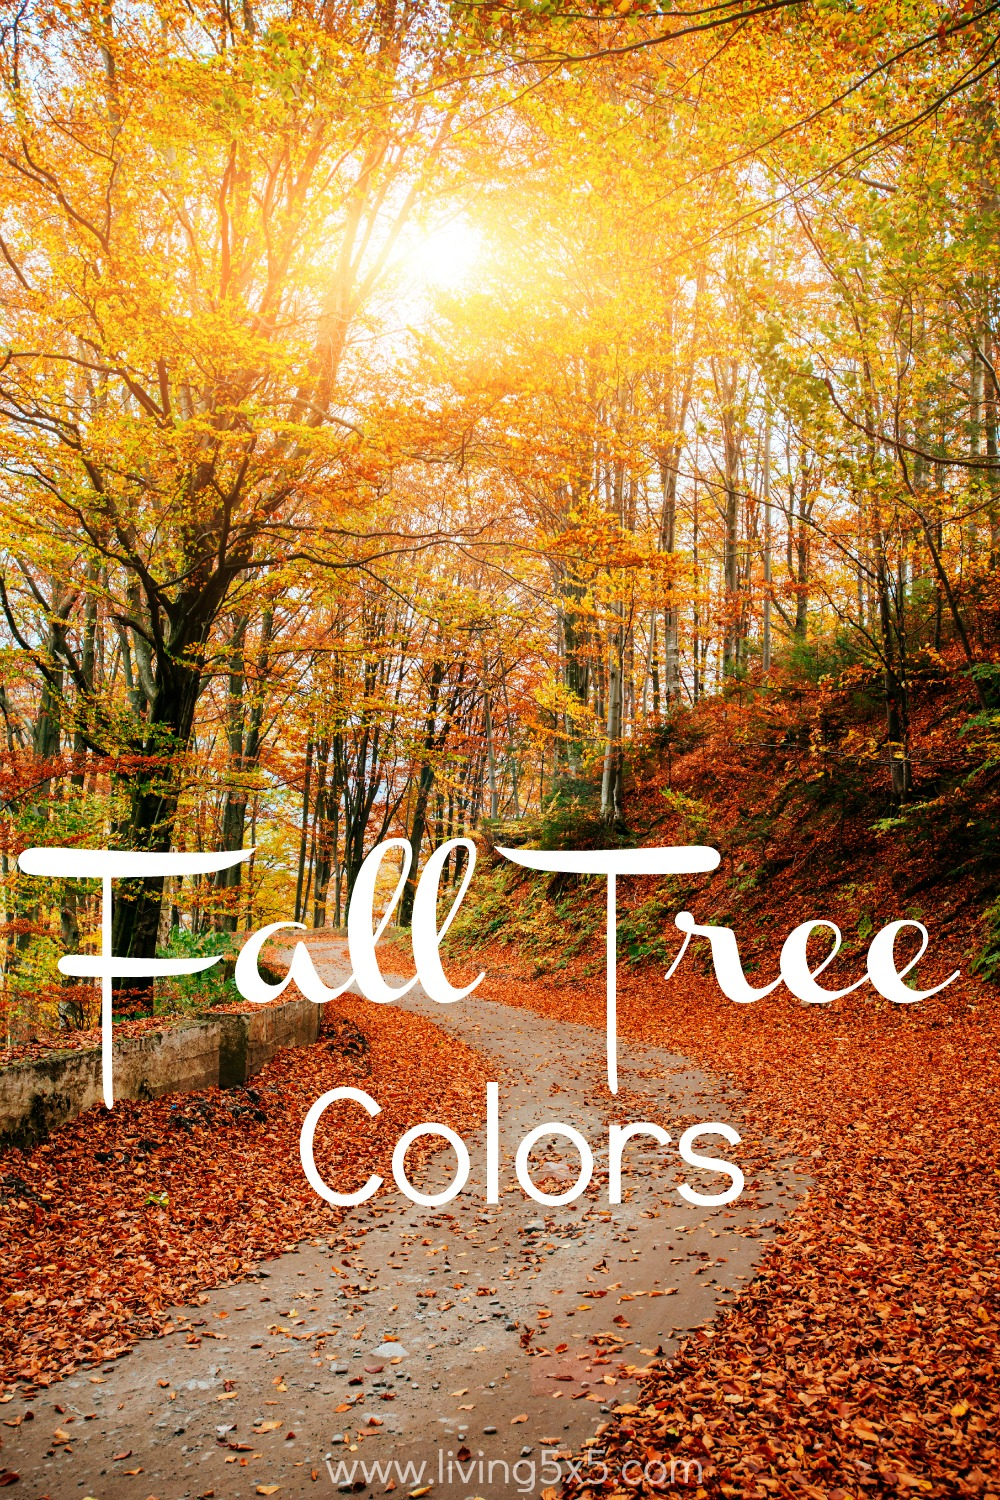 What makes you smile this time of year? It's starting to feel like Fall, and I just love all the fall tree colors.